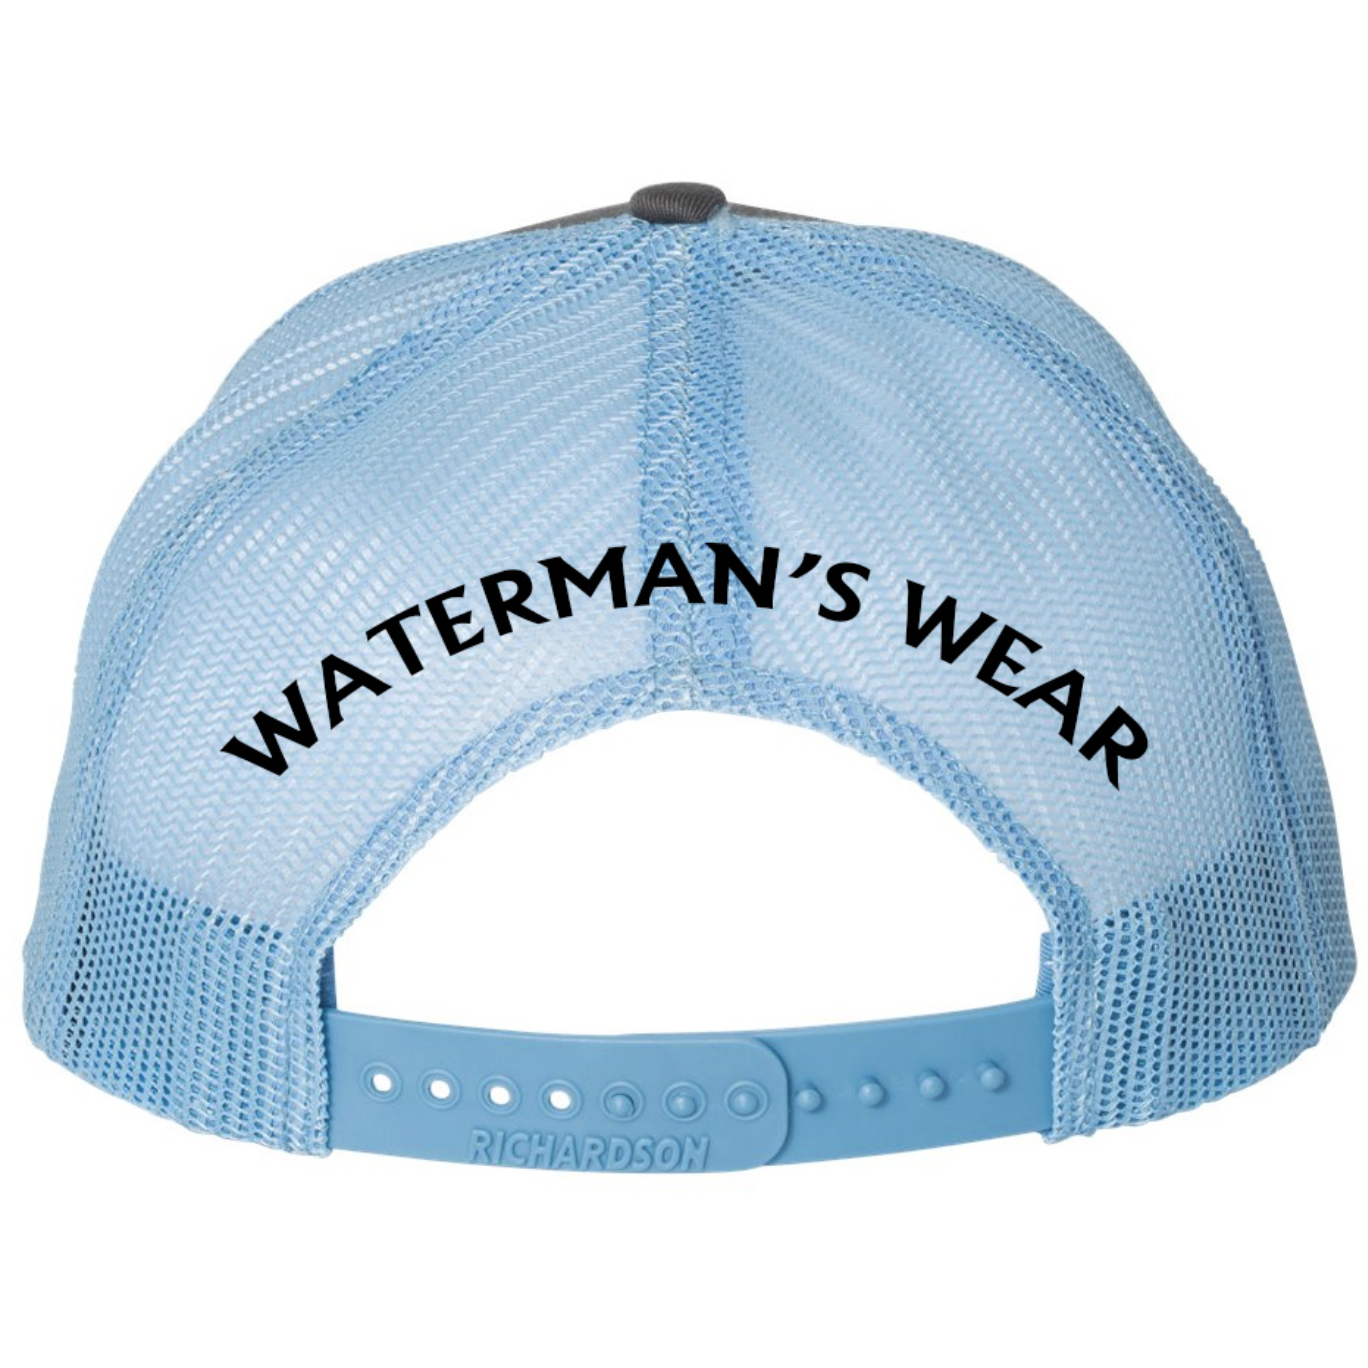 Waterman's Wear Trident Logo Dual Color Adjustable Trucker Hat - Charcoal/Columbia Blue